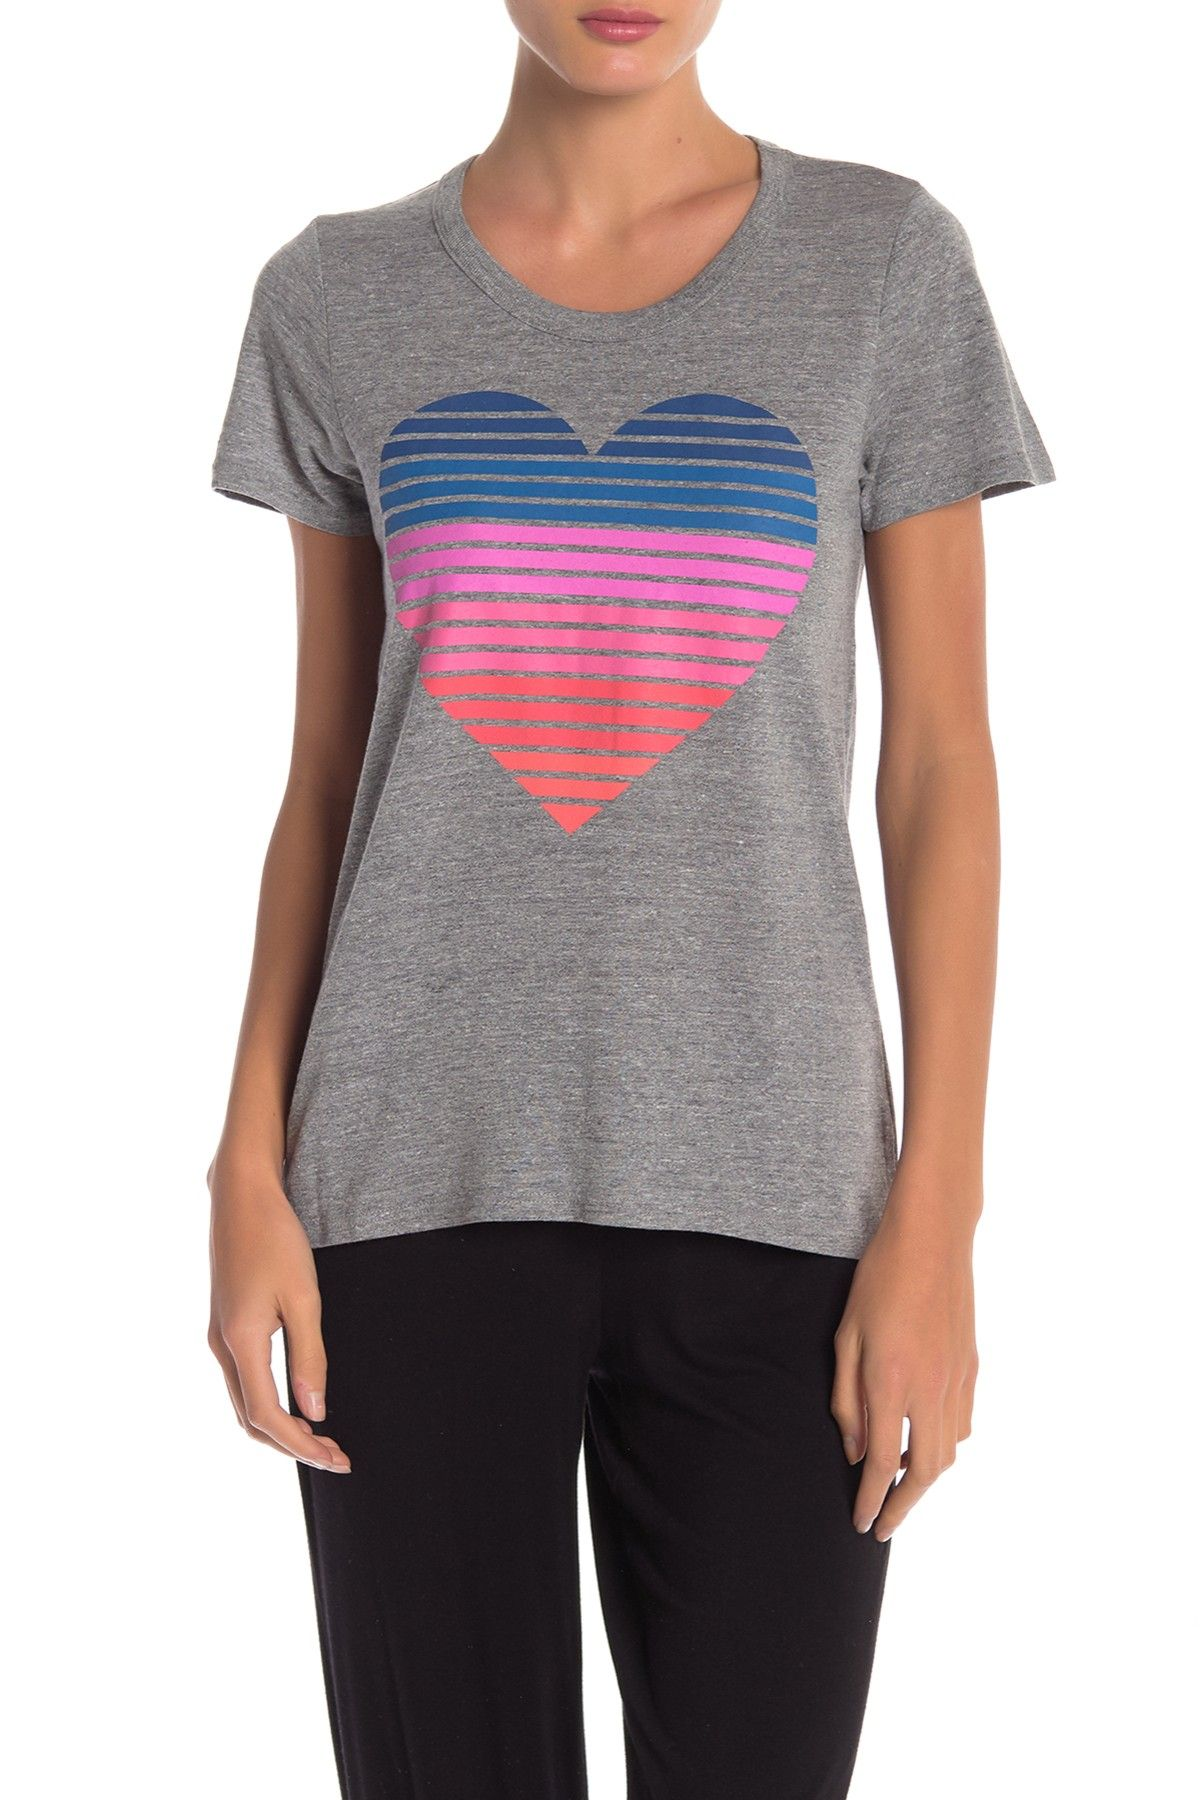 1a9f2c210 Chaser - Striped Heart Graphic Open Back Tee. Free Shipping on orders over  $100.